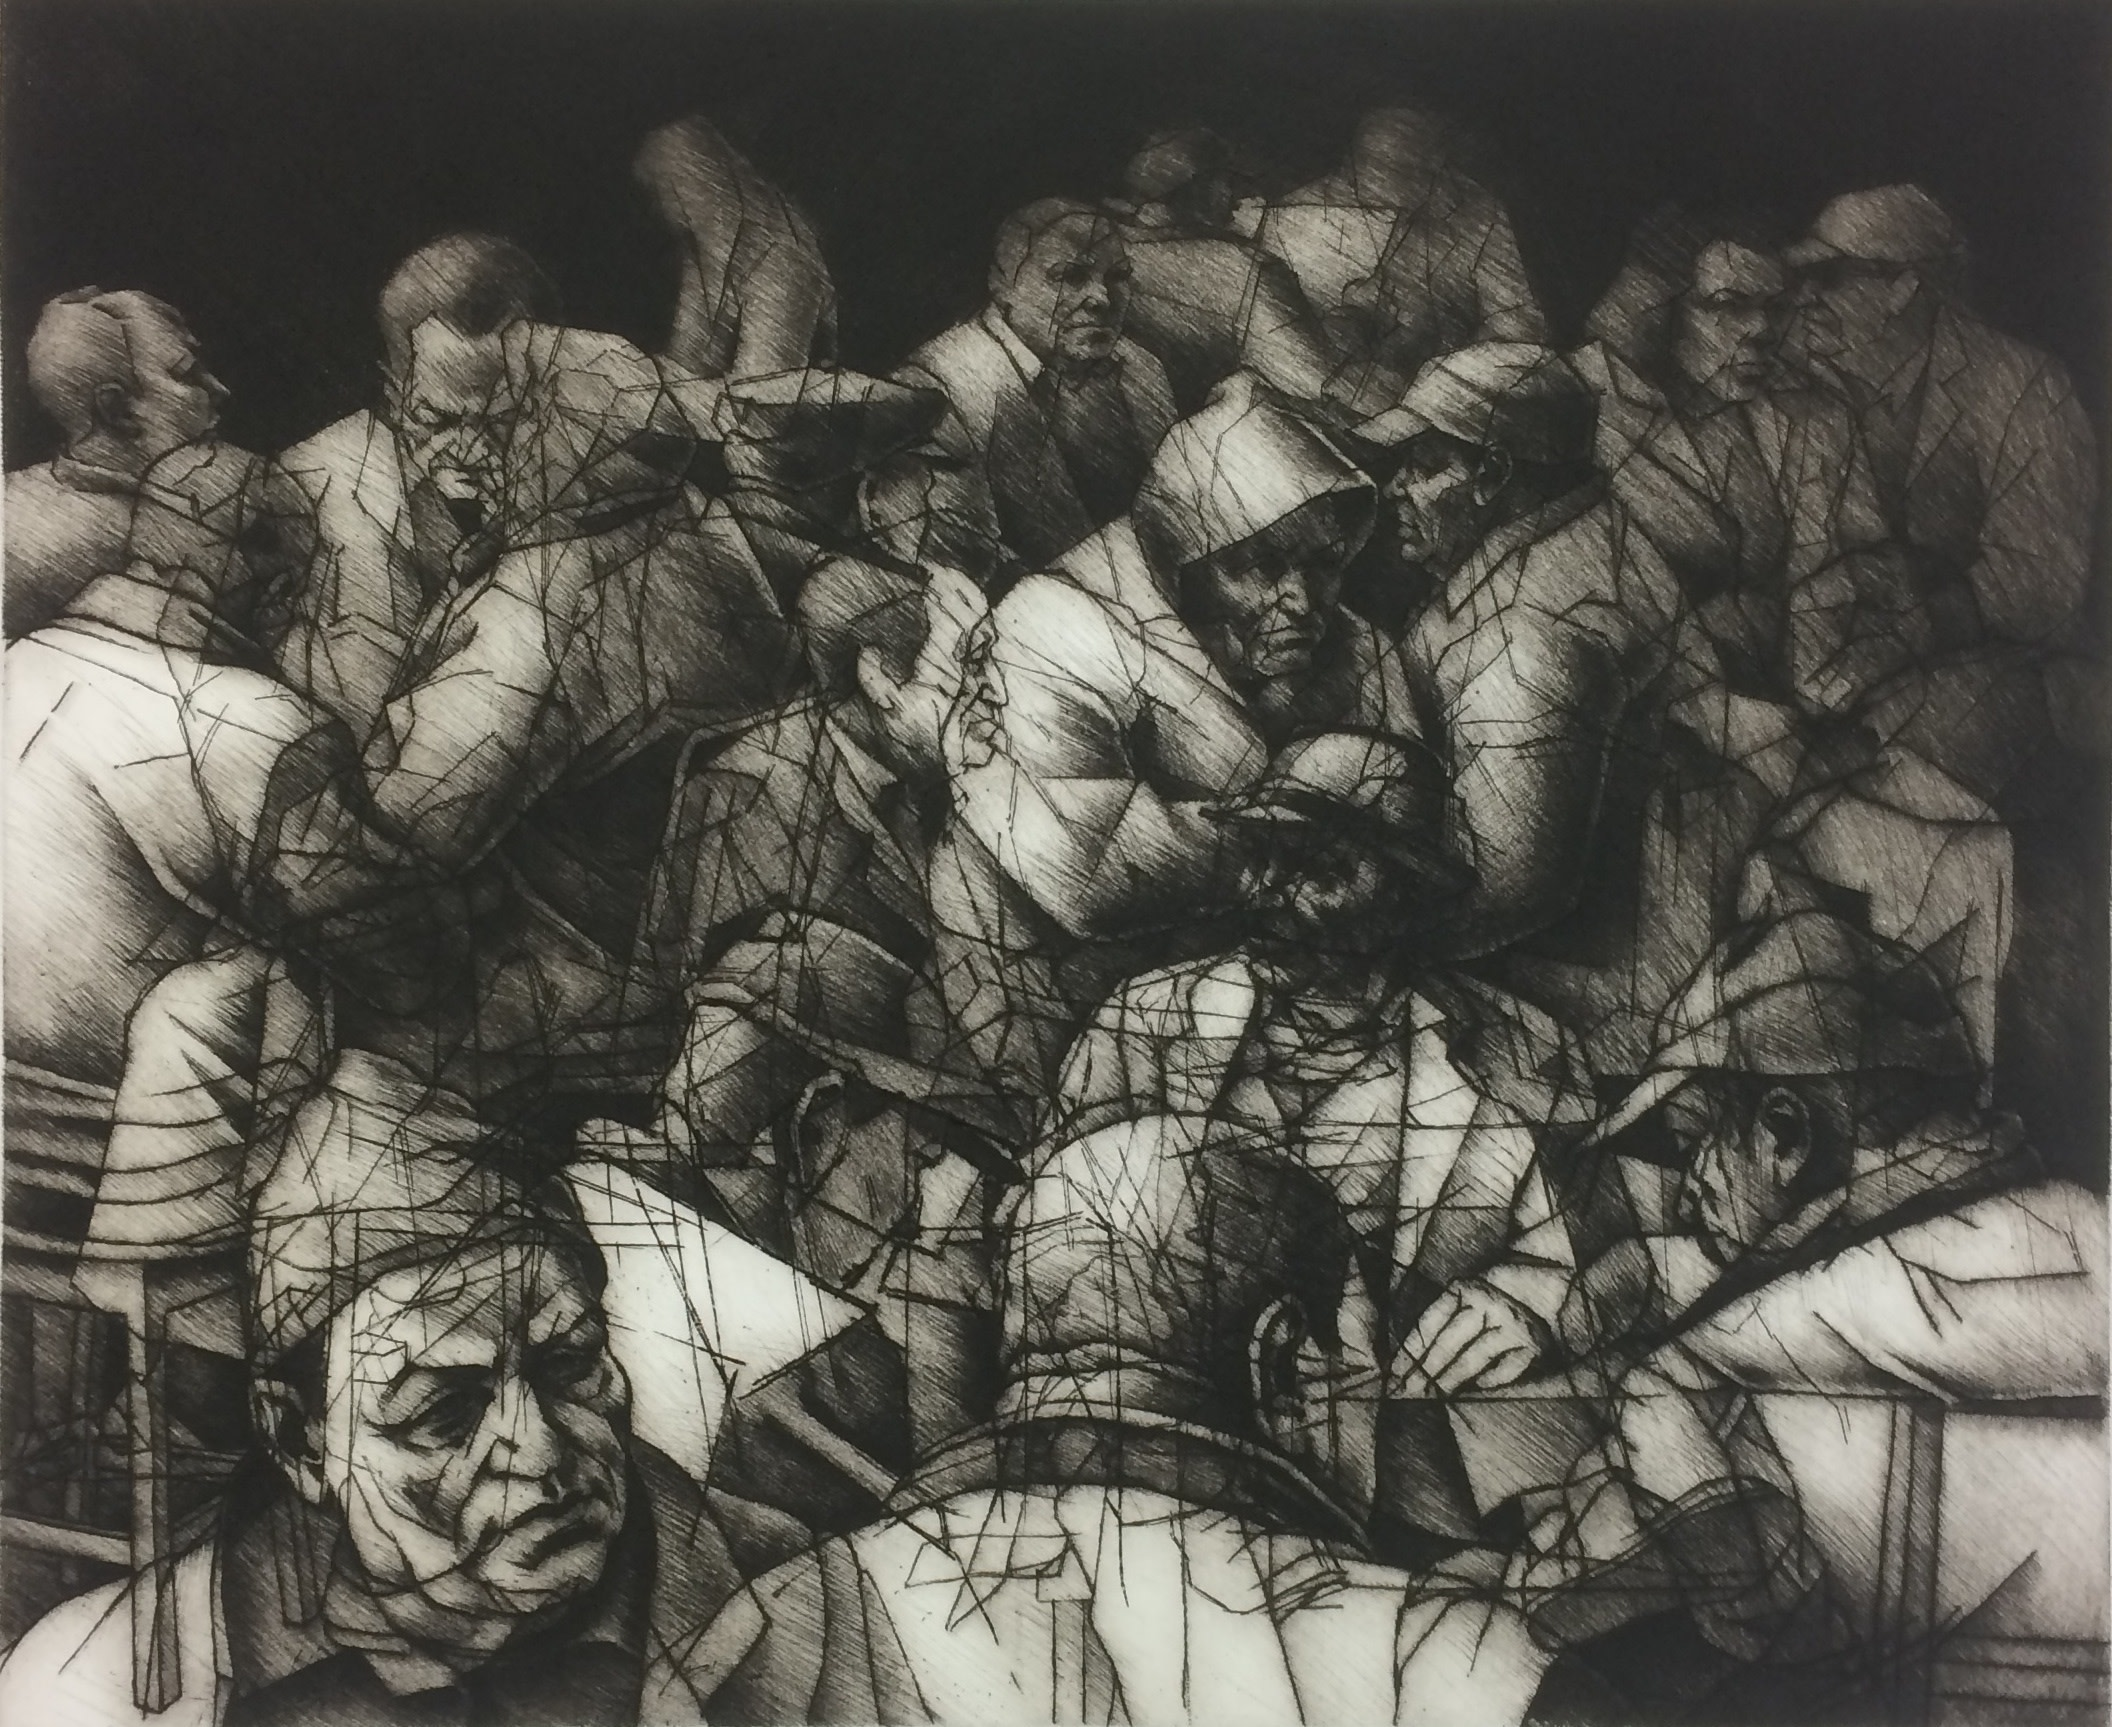 """<span class=""""link fancybox-details-link""""><a href=""""/exhibitions/17/works/image_standalone830/"""">View Detail Page</a></span><p><strong>Ali Yanya</strong></p><p>Traders</p><p>etching, engraving & drypoint, ed of 12</p><p>50 x 60cm</p><p>£425 framed</p><p>£325 unframed</p>"""